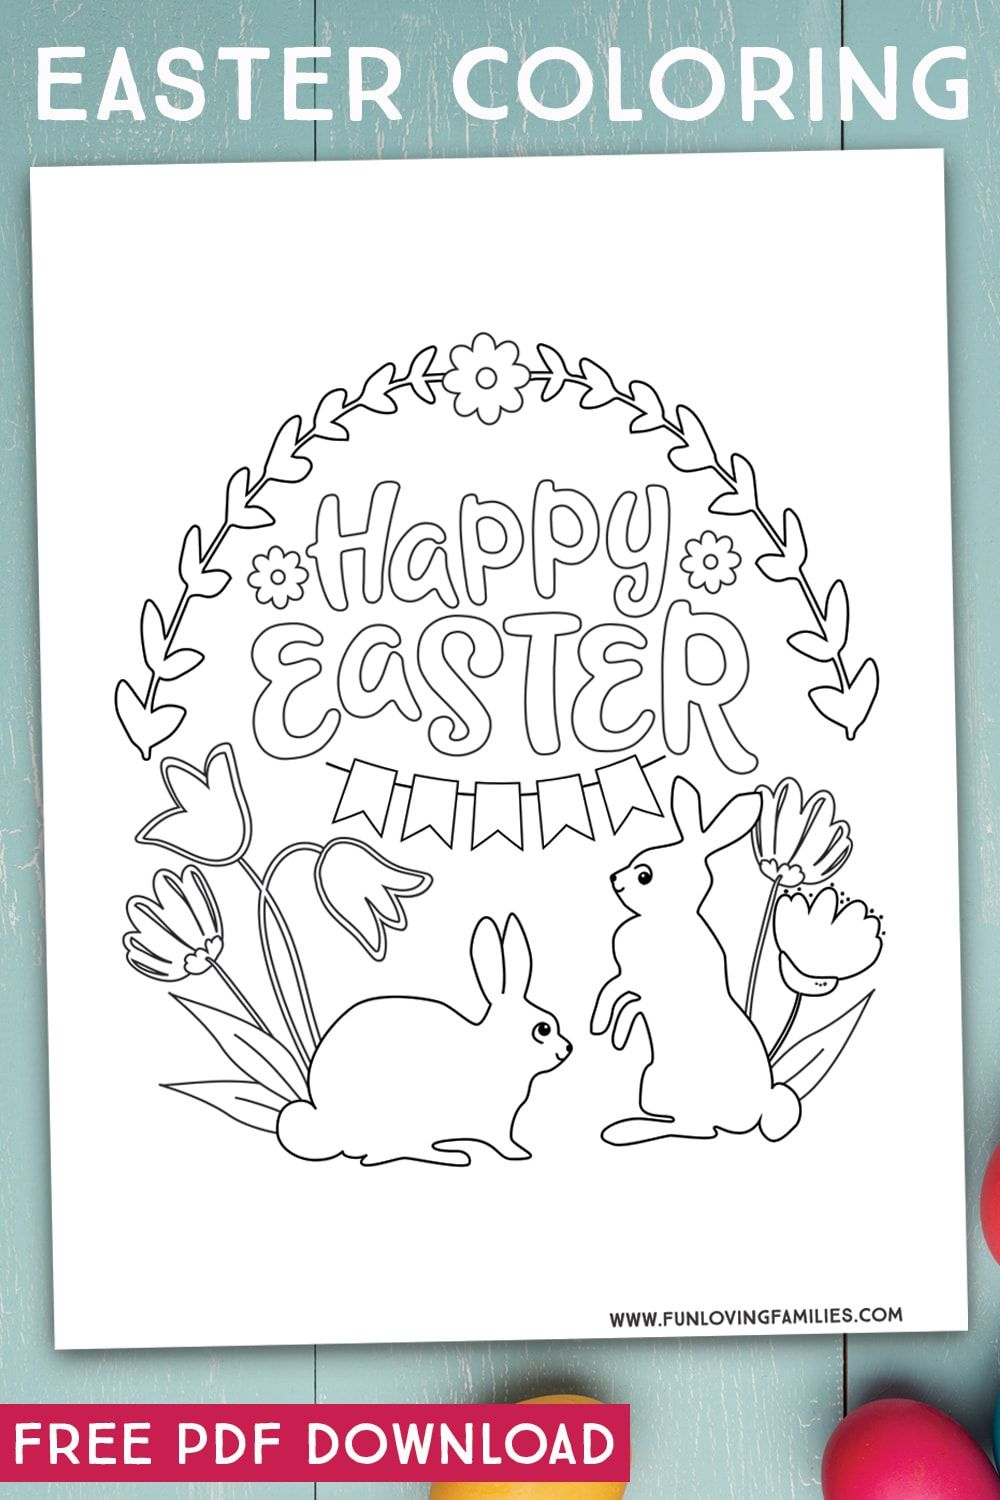 9 Easter Coloring Pages for Kids (Free Printables